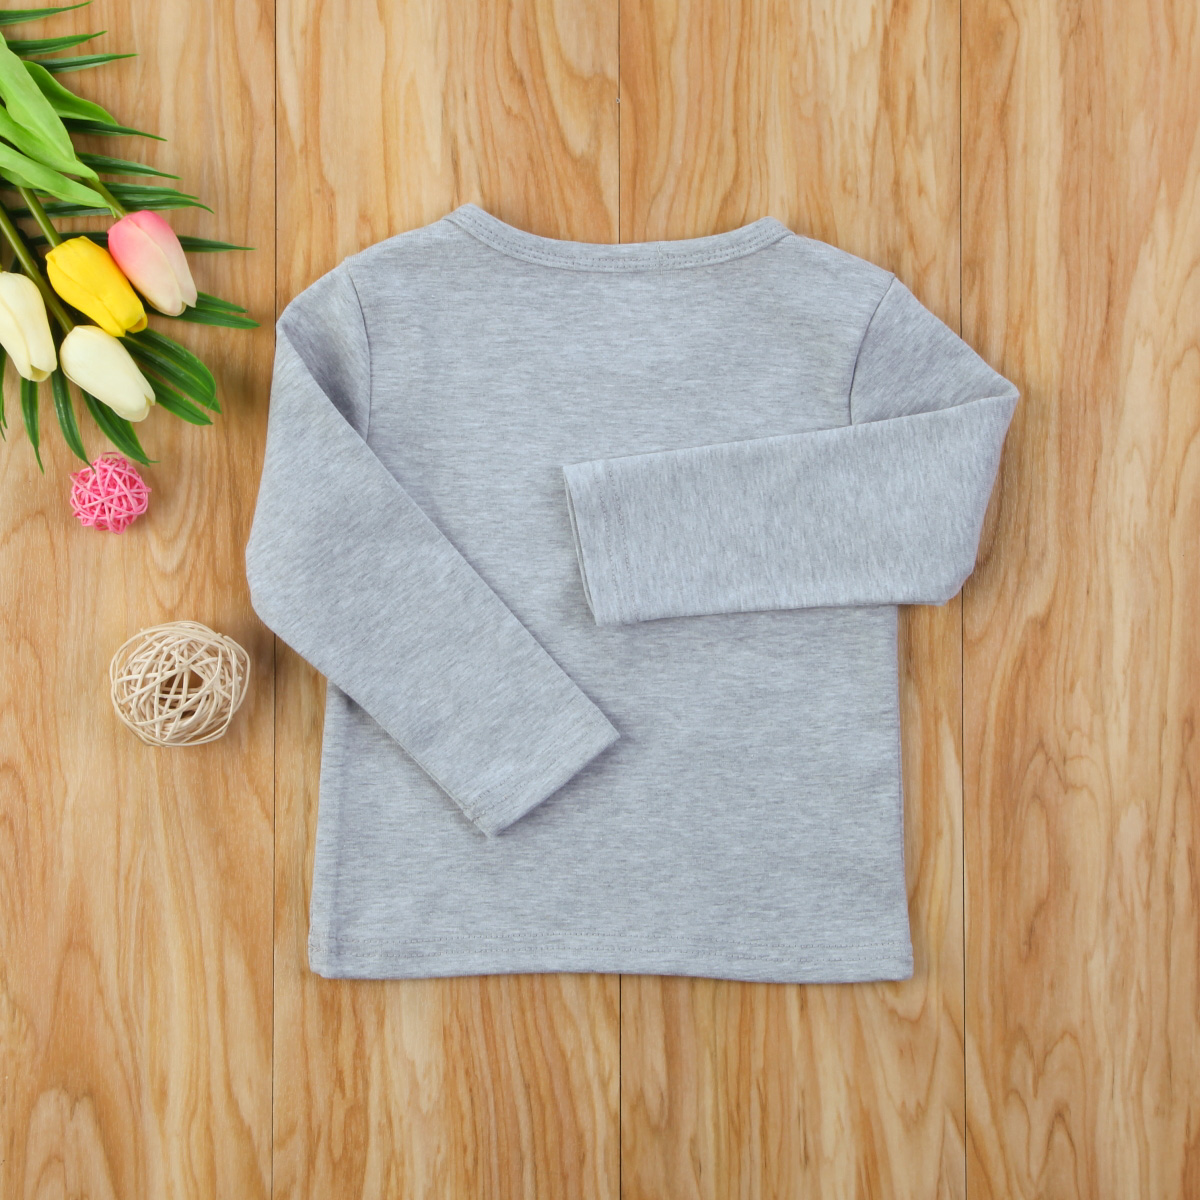 Autumn Cotton Newborn Infant Kids Baby Boys Girls Clothes Solid Cotton Soft Clothing Long Sleeves T-shirt Tops 6